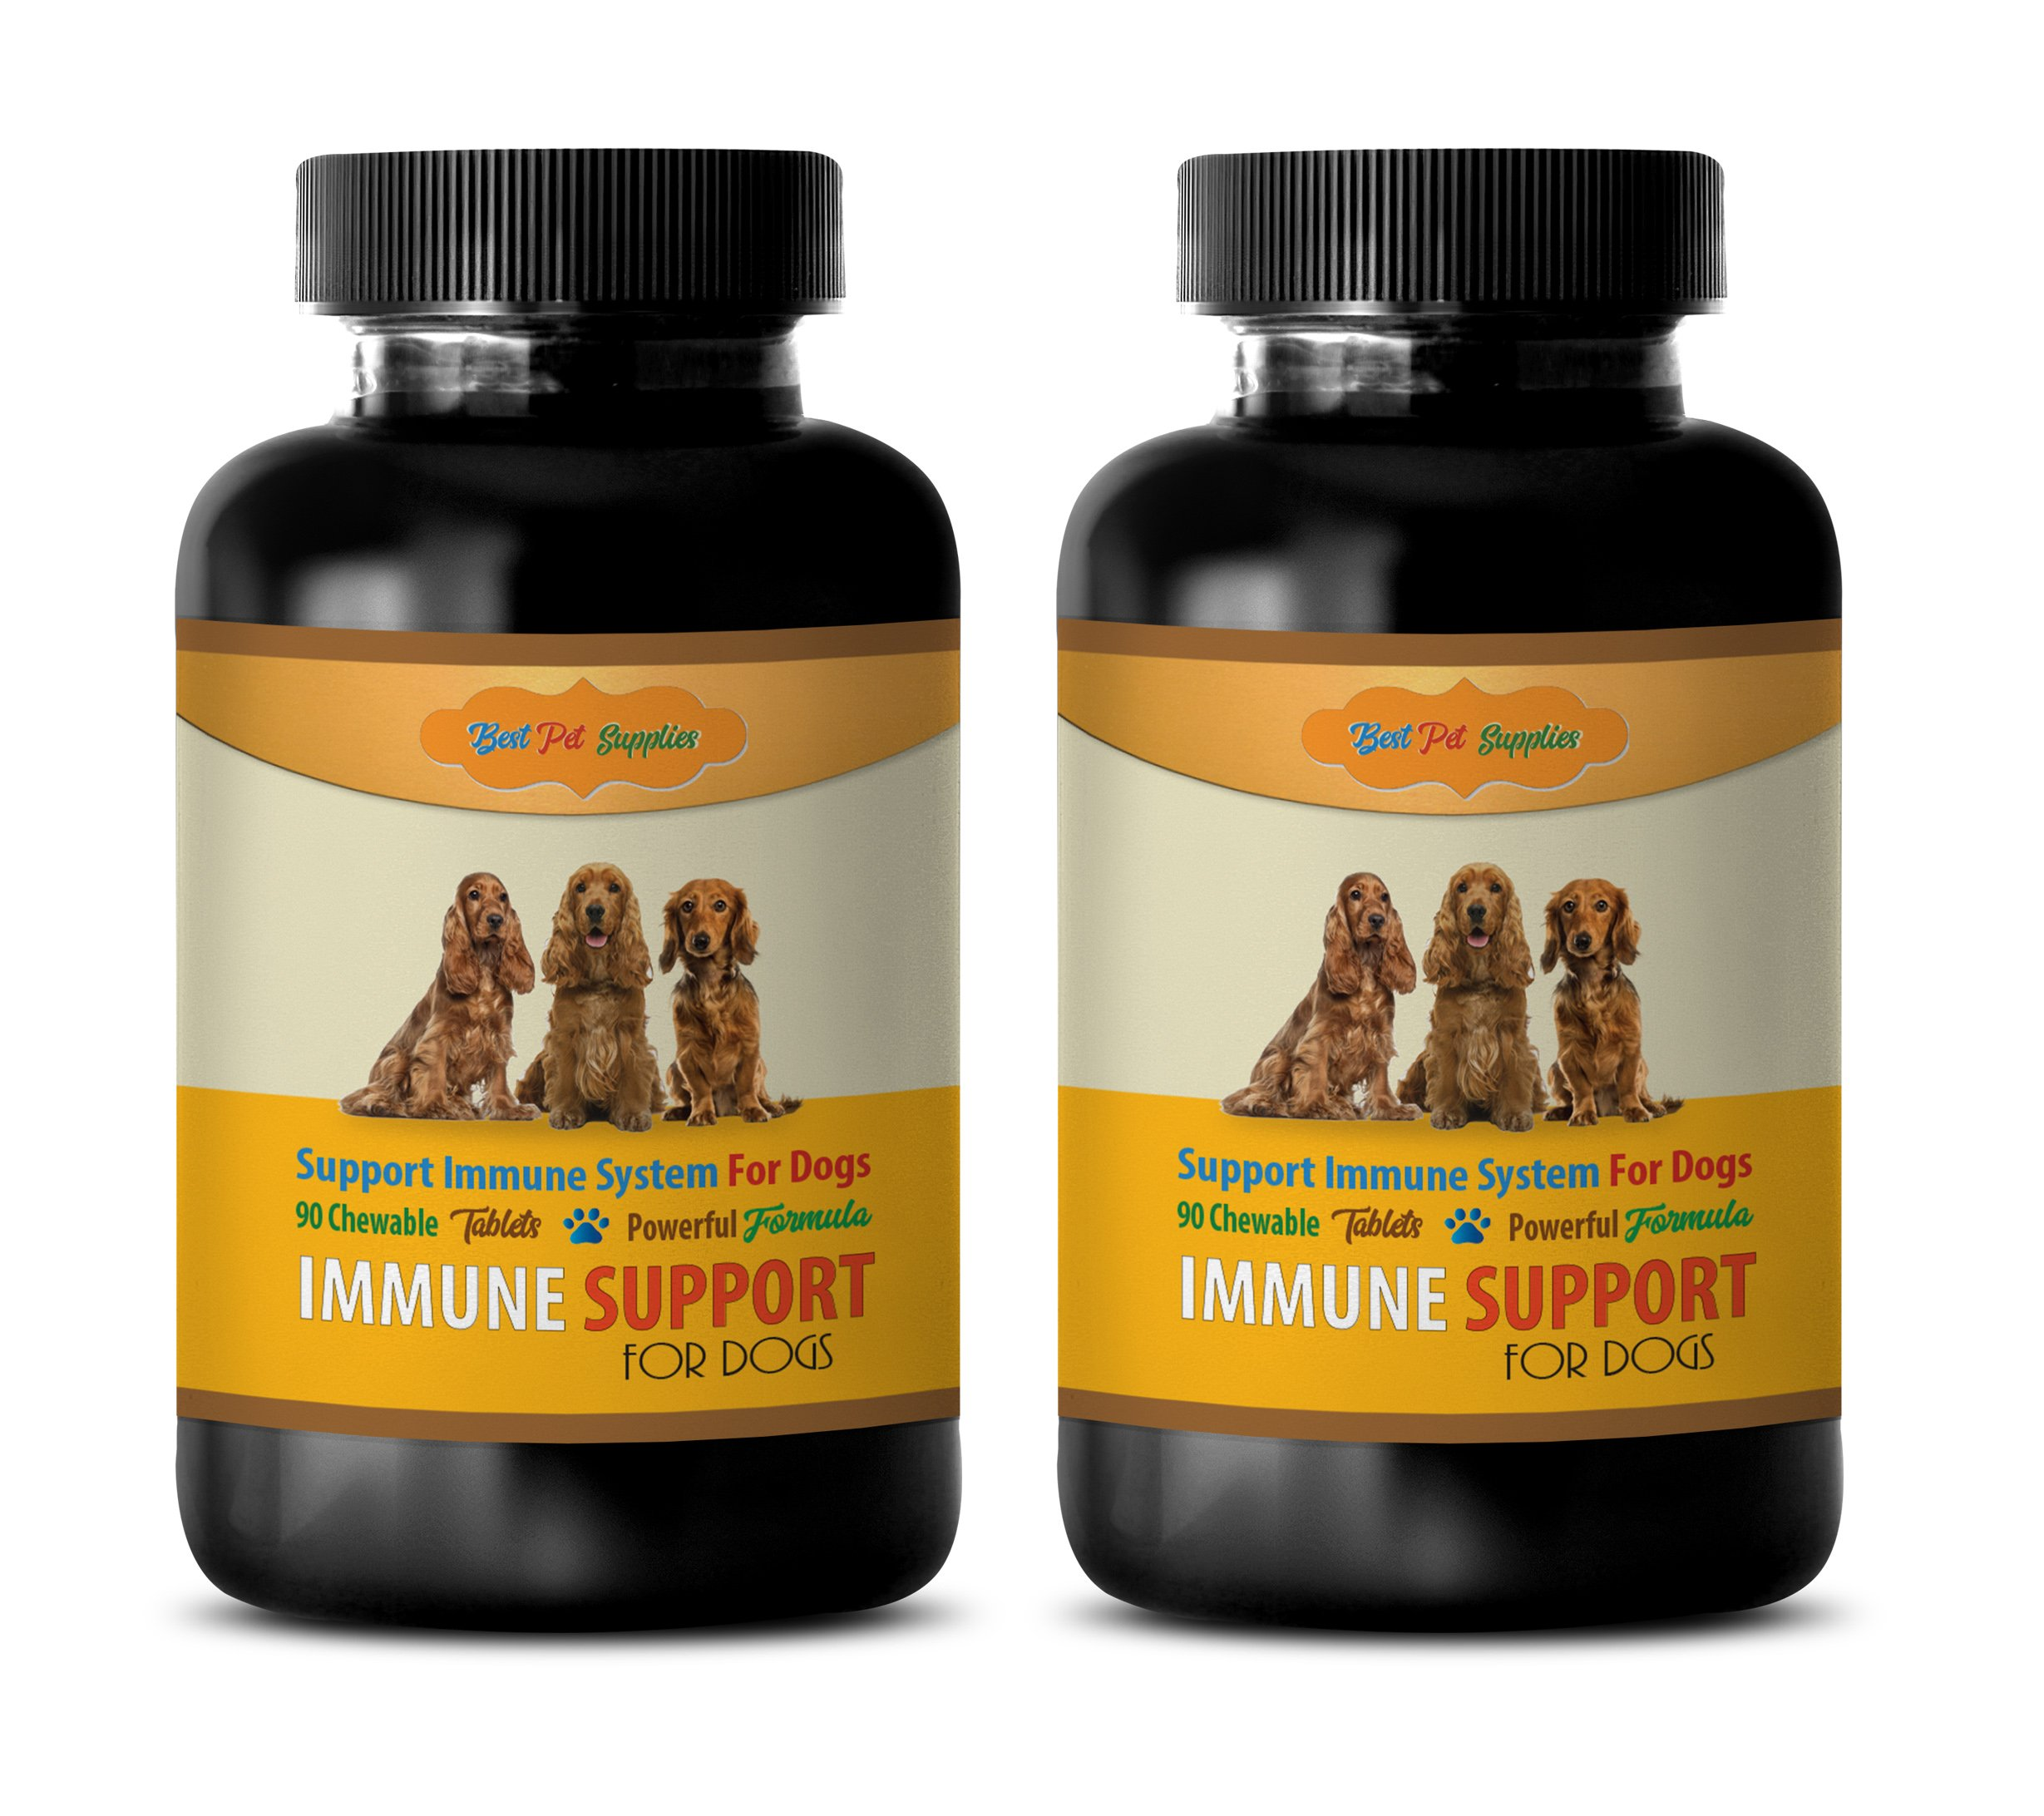 Immune System Support for Dogs - Powerful Immune Support for Dogs - Best Immune Formula - Chewy Treats - Milk Thistle for Dogs with high Liver enzymes - 180 Chews (2 Bottle) by BEST PET SUPPLIES LLC